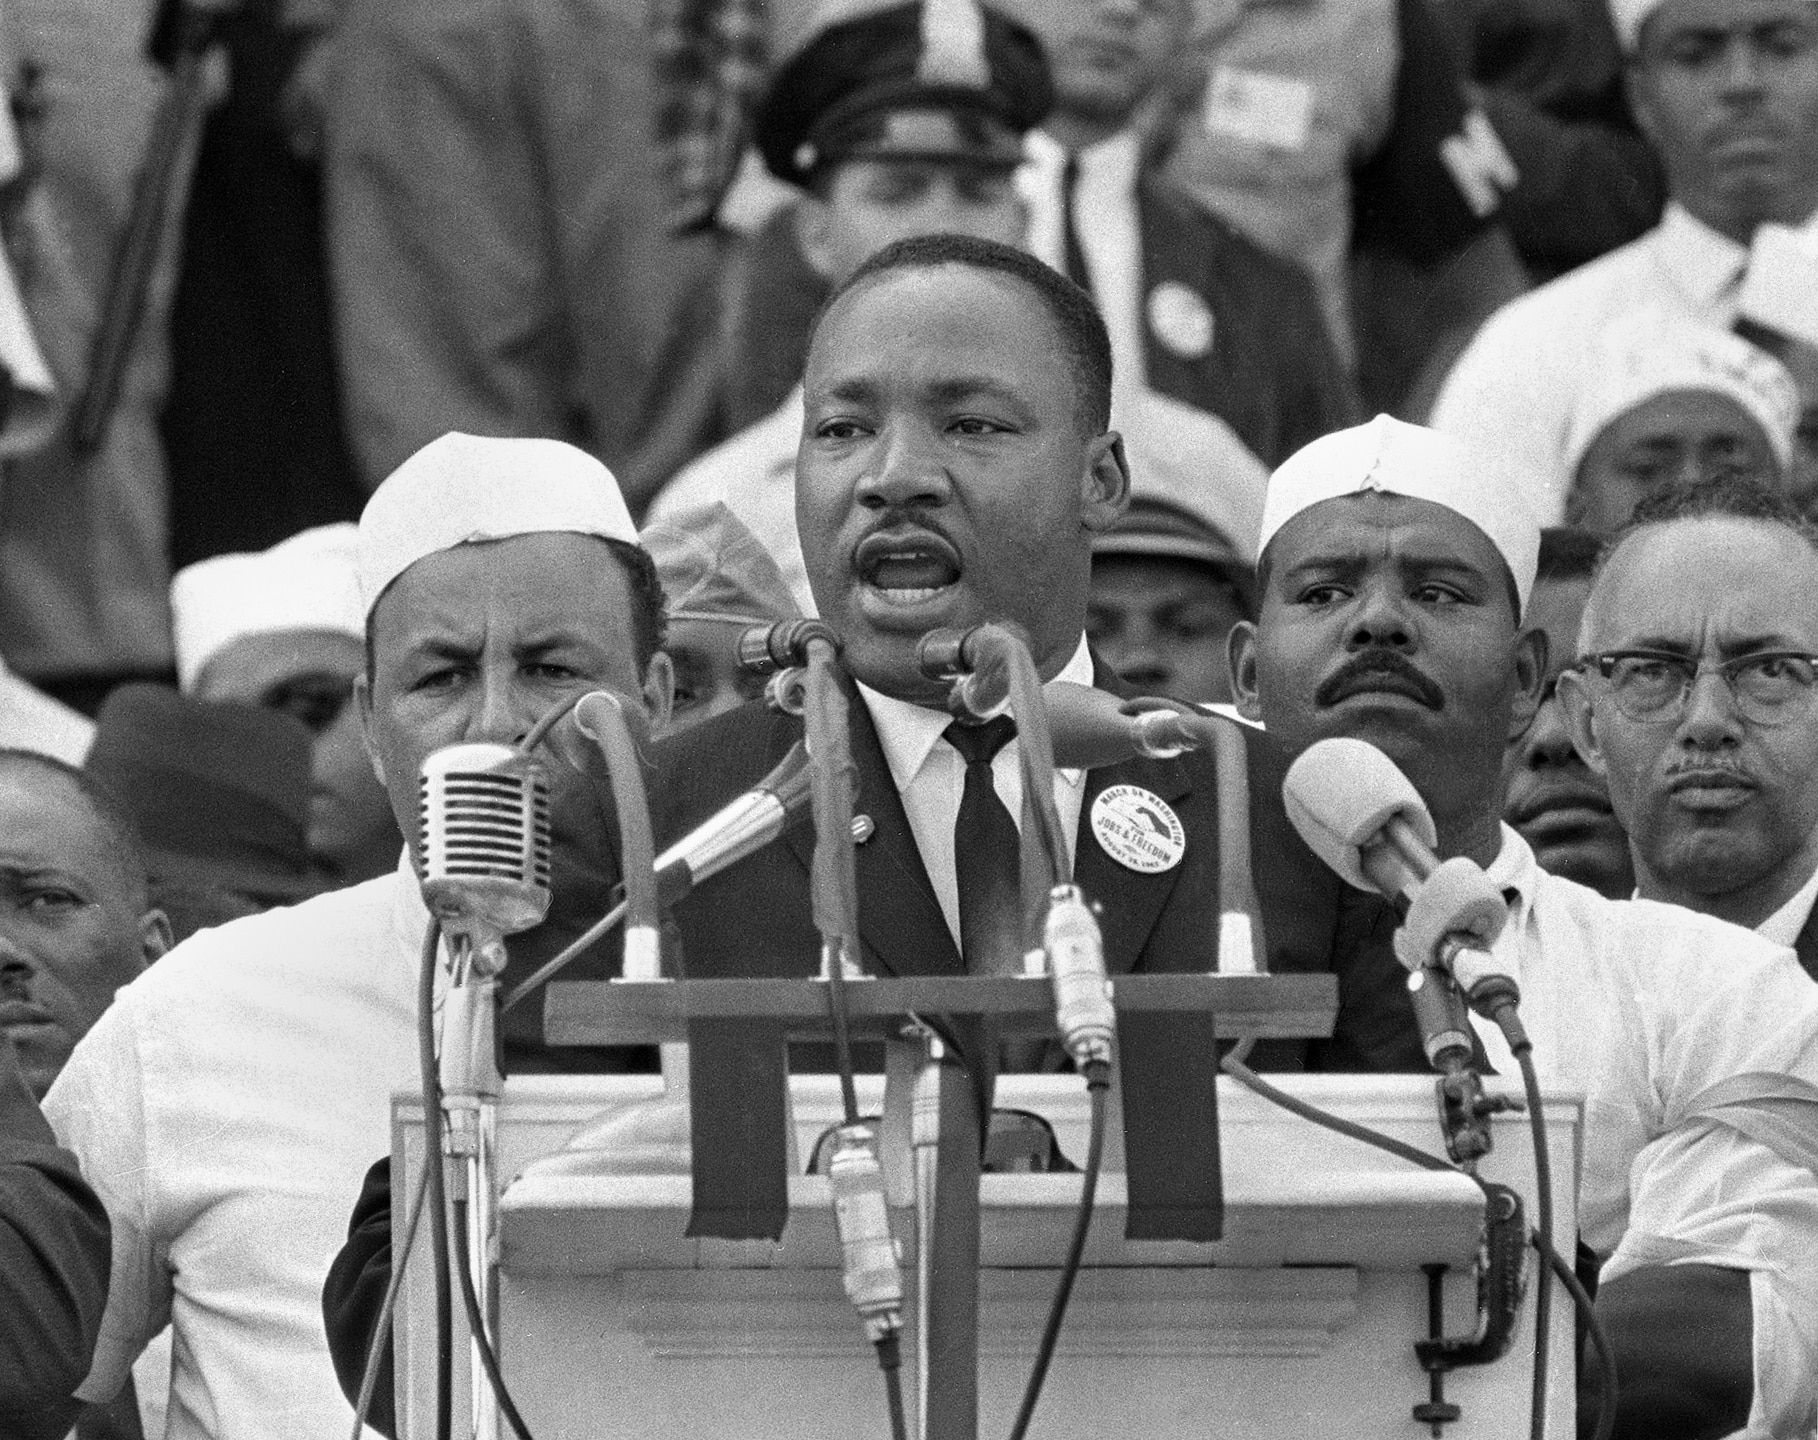 Martin Luther King speaking into row of microphones, crowd behind him (© AP Images)